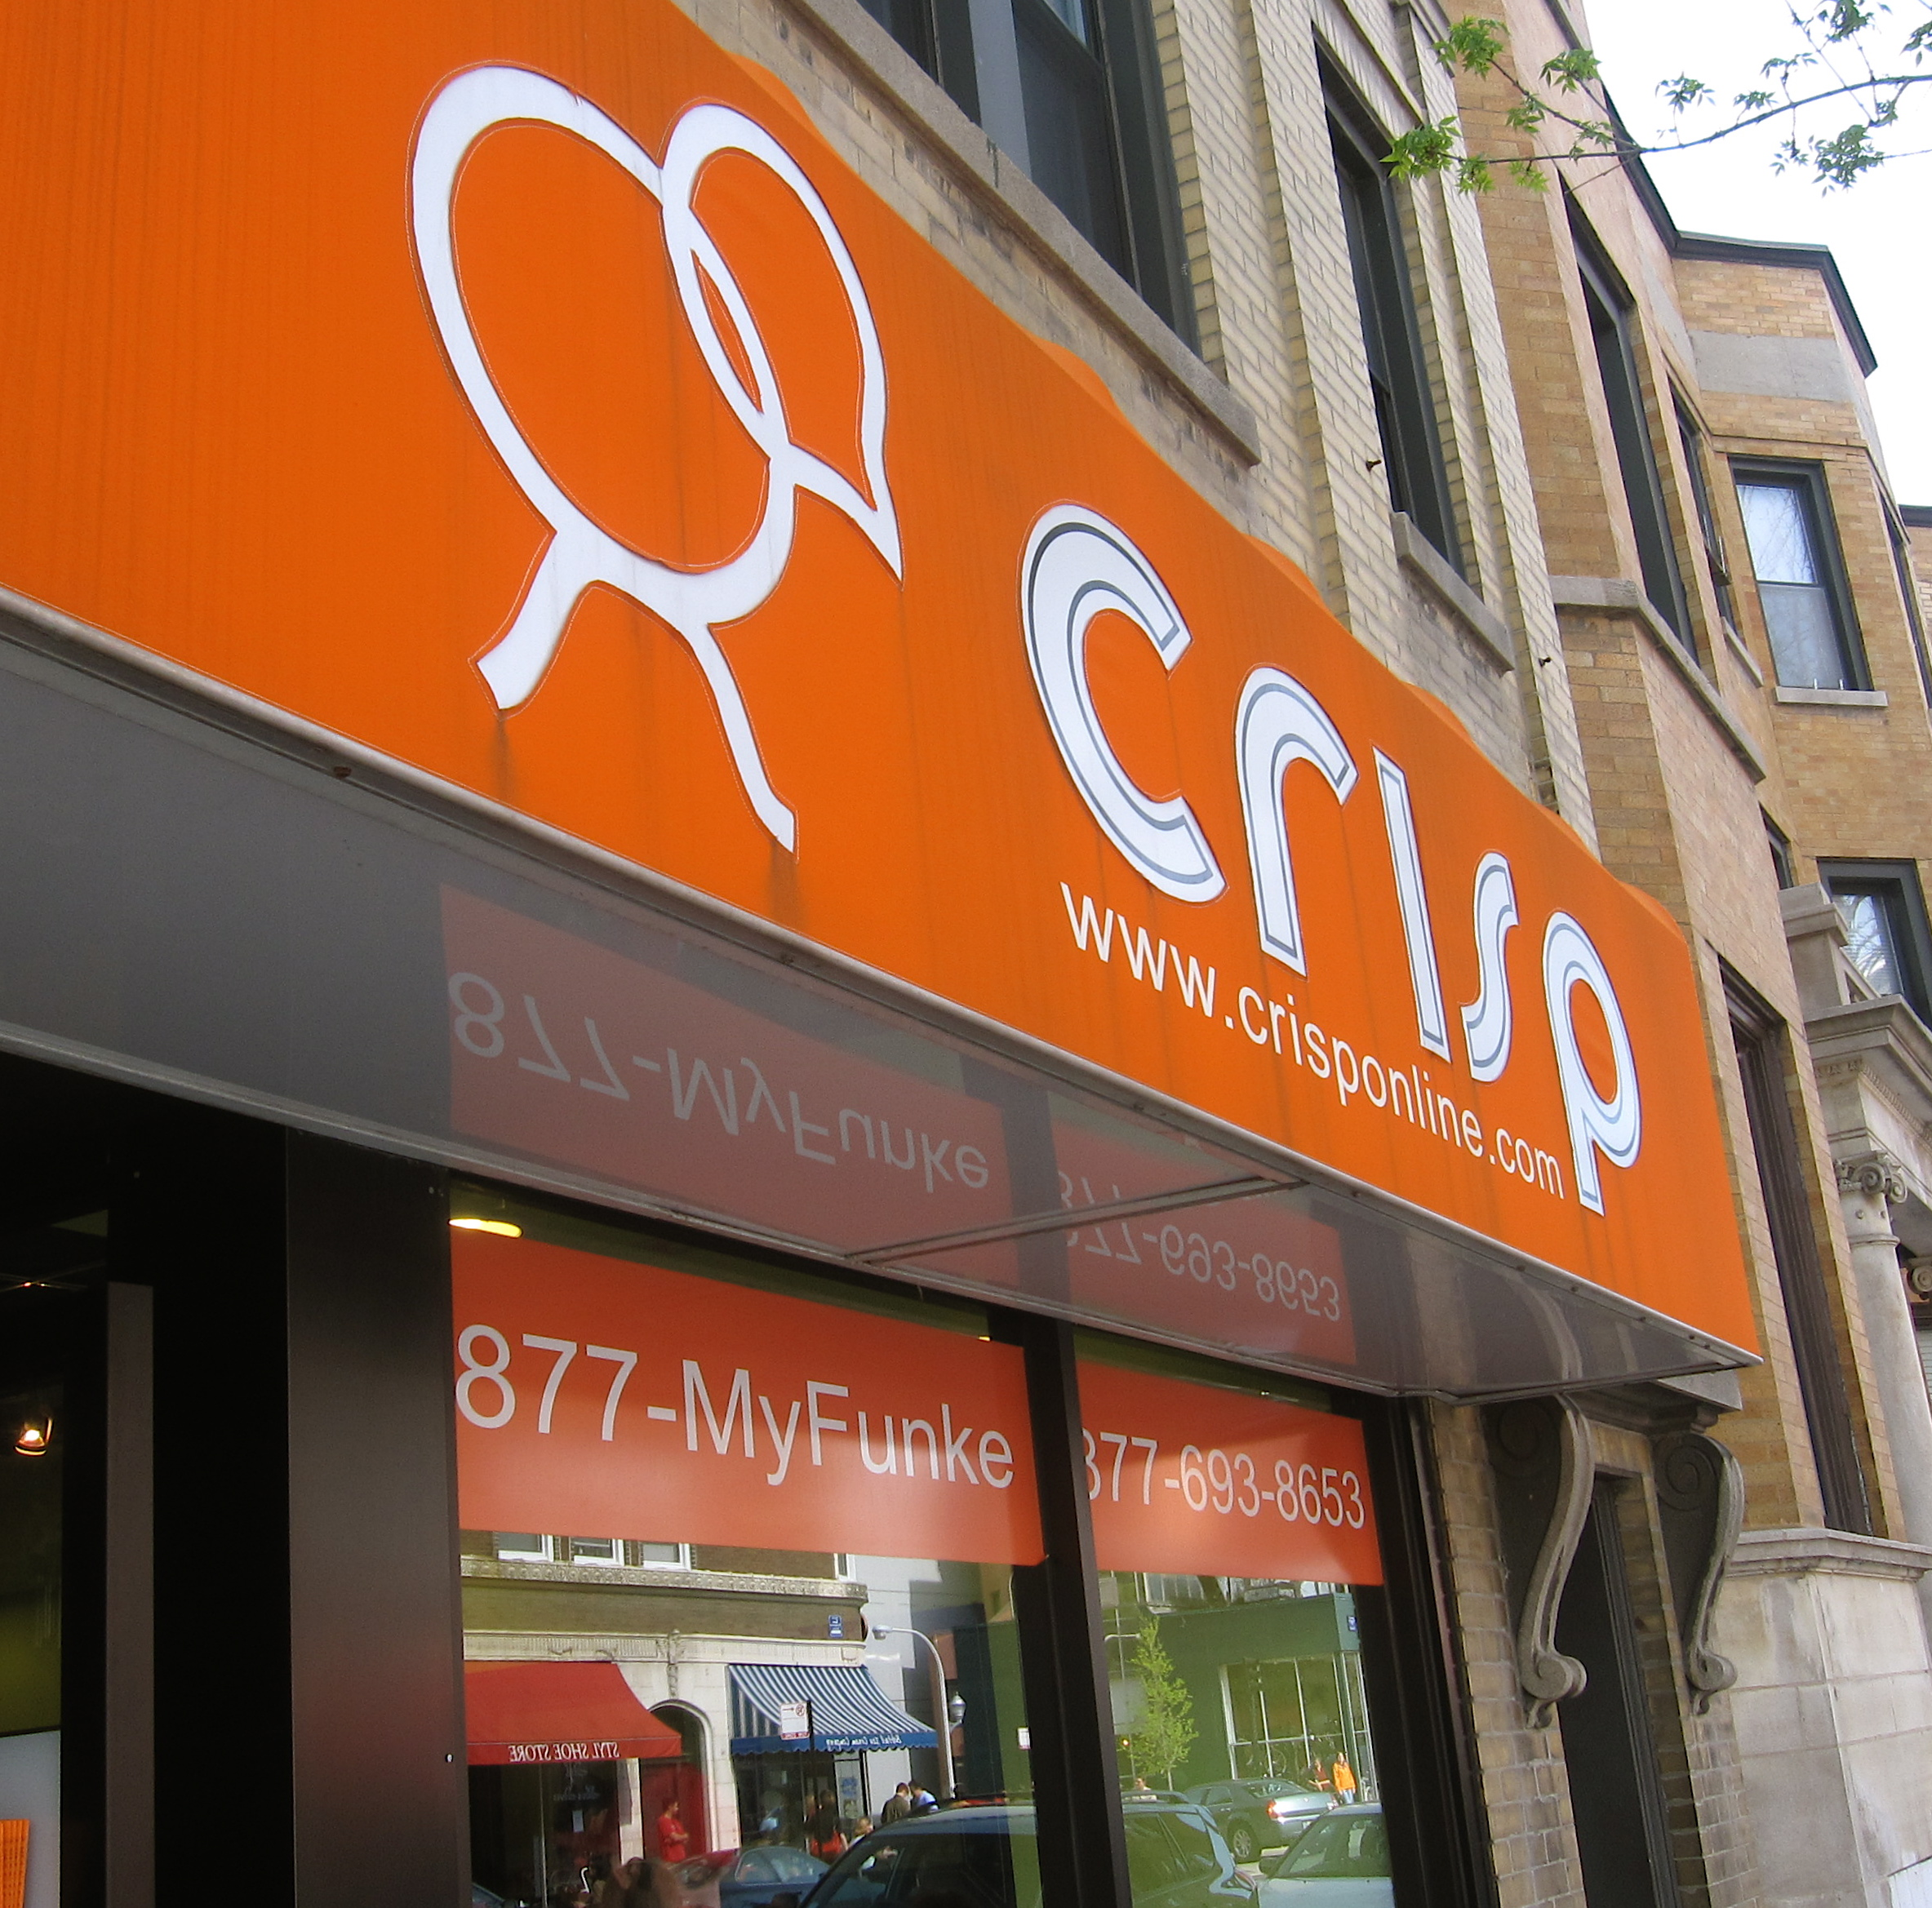 You can't miss the bright orange awning at Crisp, now we just need more of them